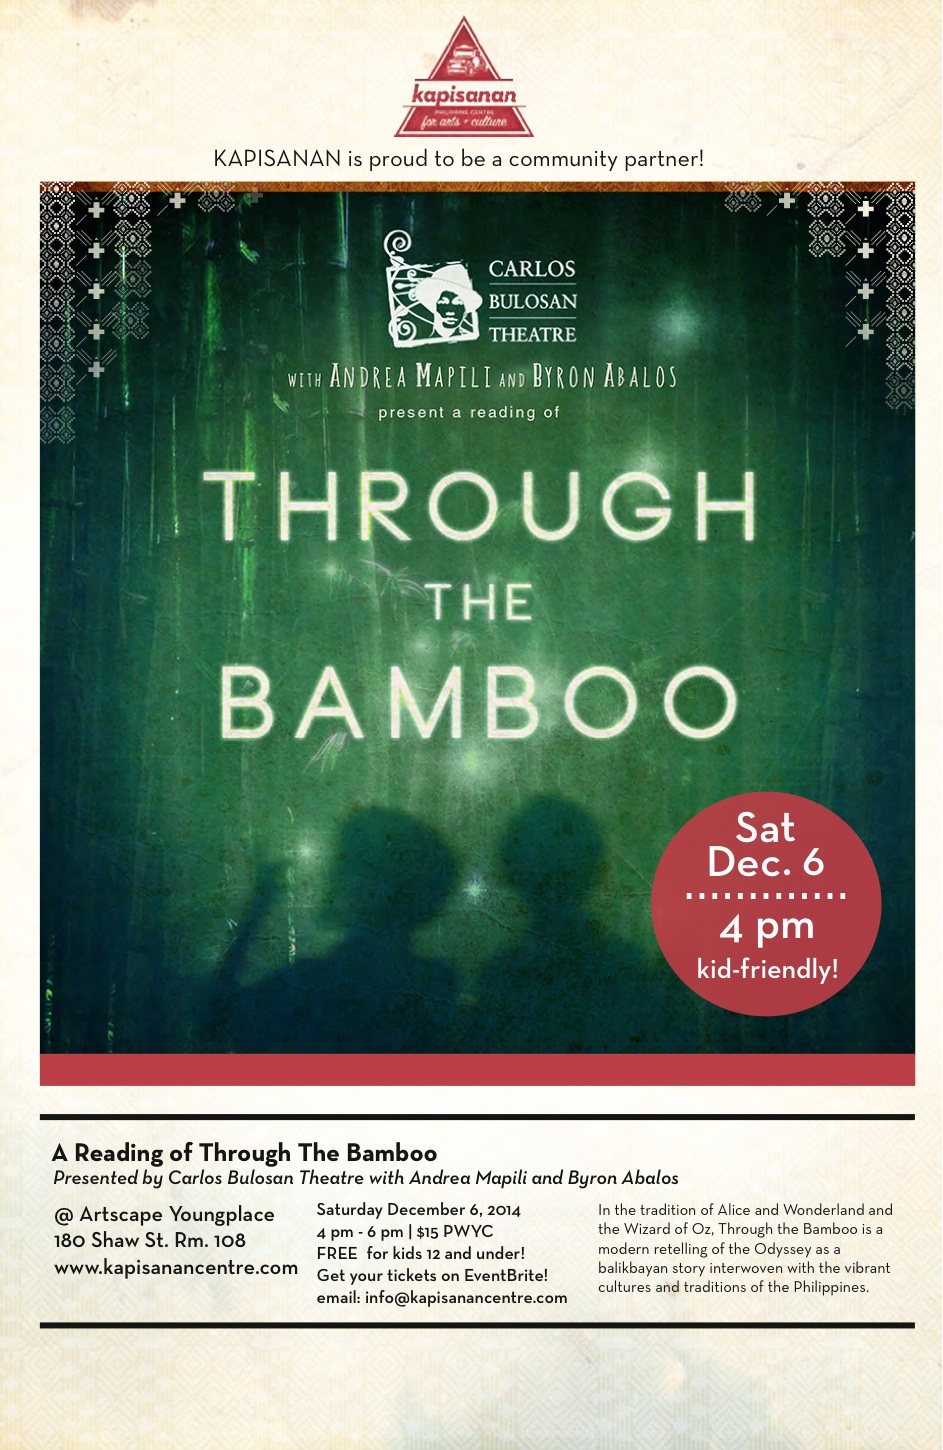 Through The Bamboo